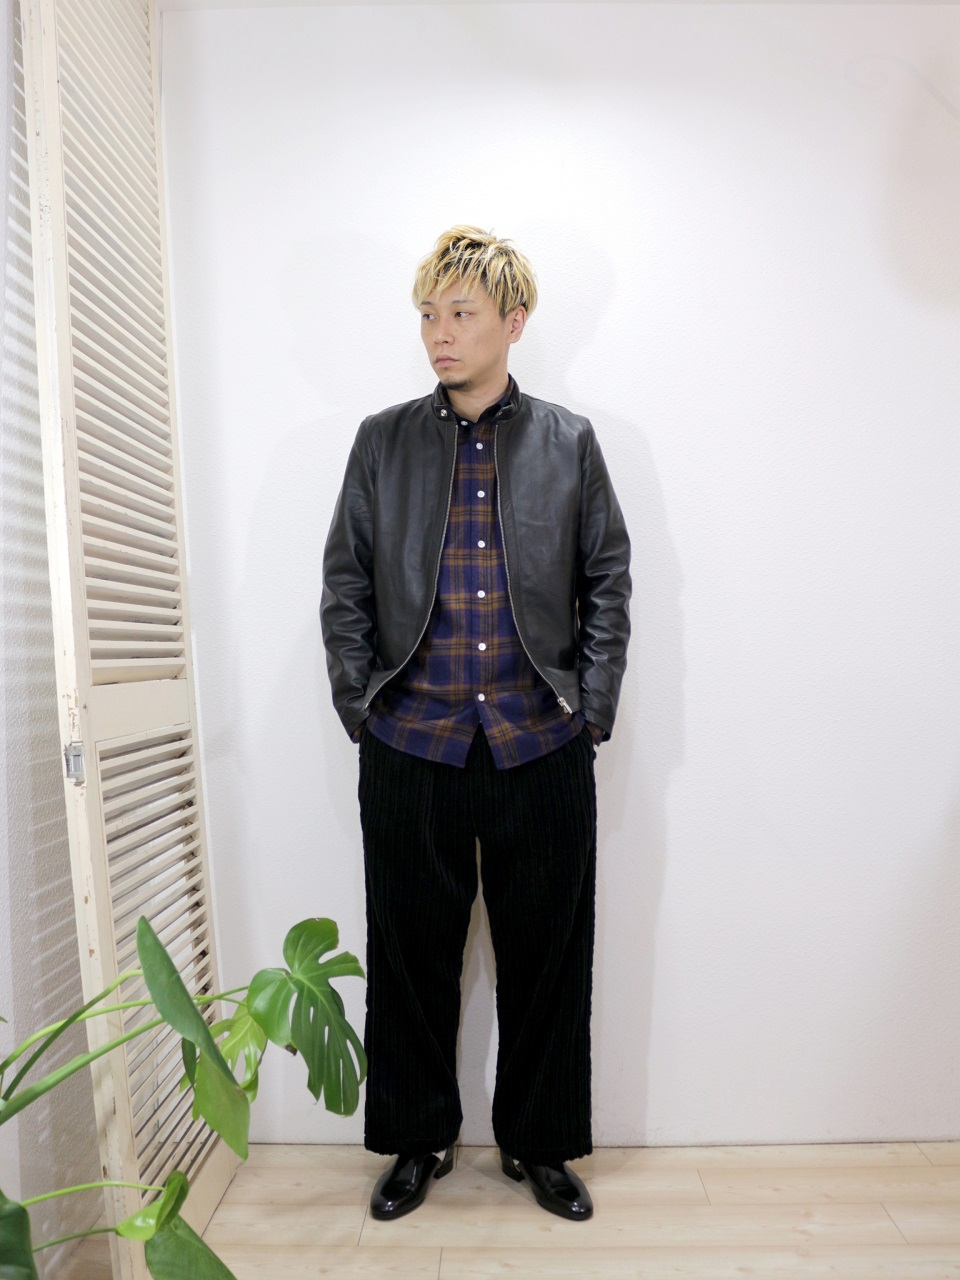 outer/ReRe-LAMBSKIN SINGLE RIDERS JACKET(SIZE 2)shirt/modem design-TARTAN CHECK FLANNEL SHIRT(M-1807755)(SIZE 2)pants/ReAdd-CORDUROY WIDE PANTS(SIZE M)を使ったコーディネート